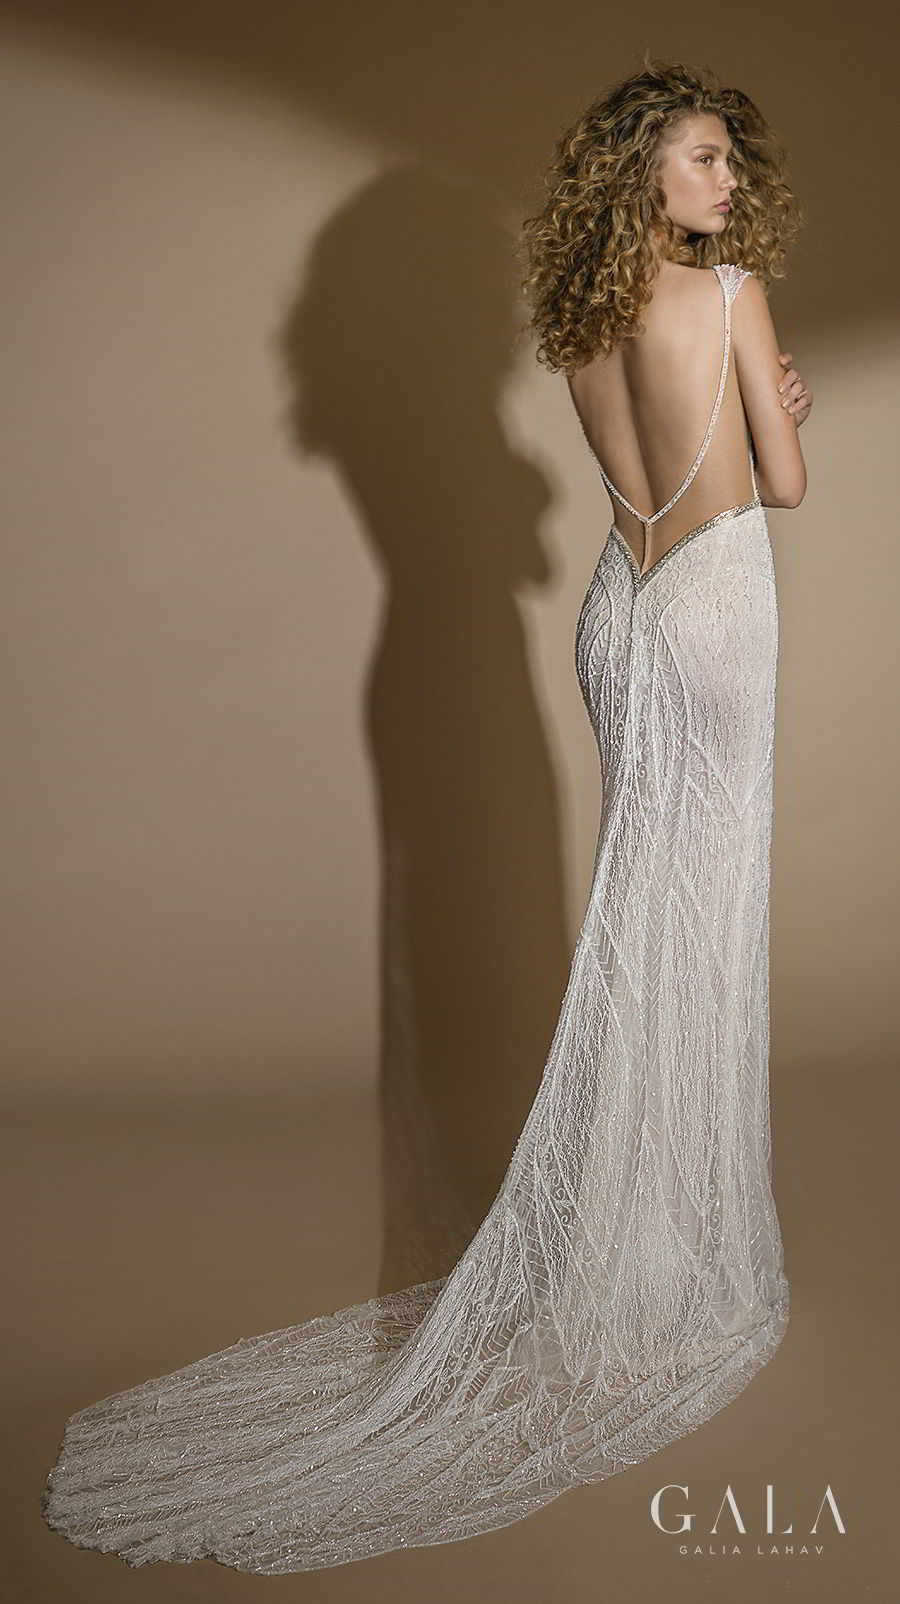 galia lahav gala 2019 bridal cap sleeves bateau deep plunging v neck full embellishment art deco elegant fit and flare sheath wedding dress open back chapel train (101) bv